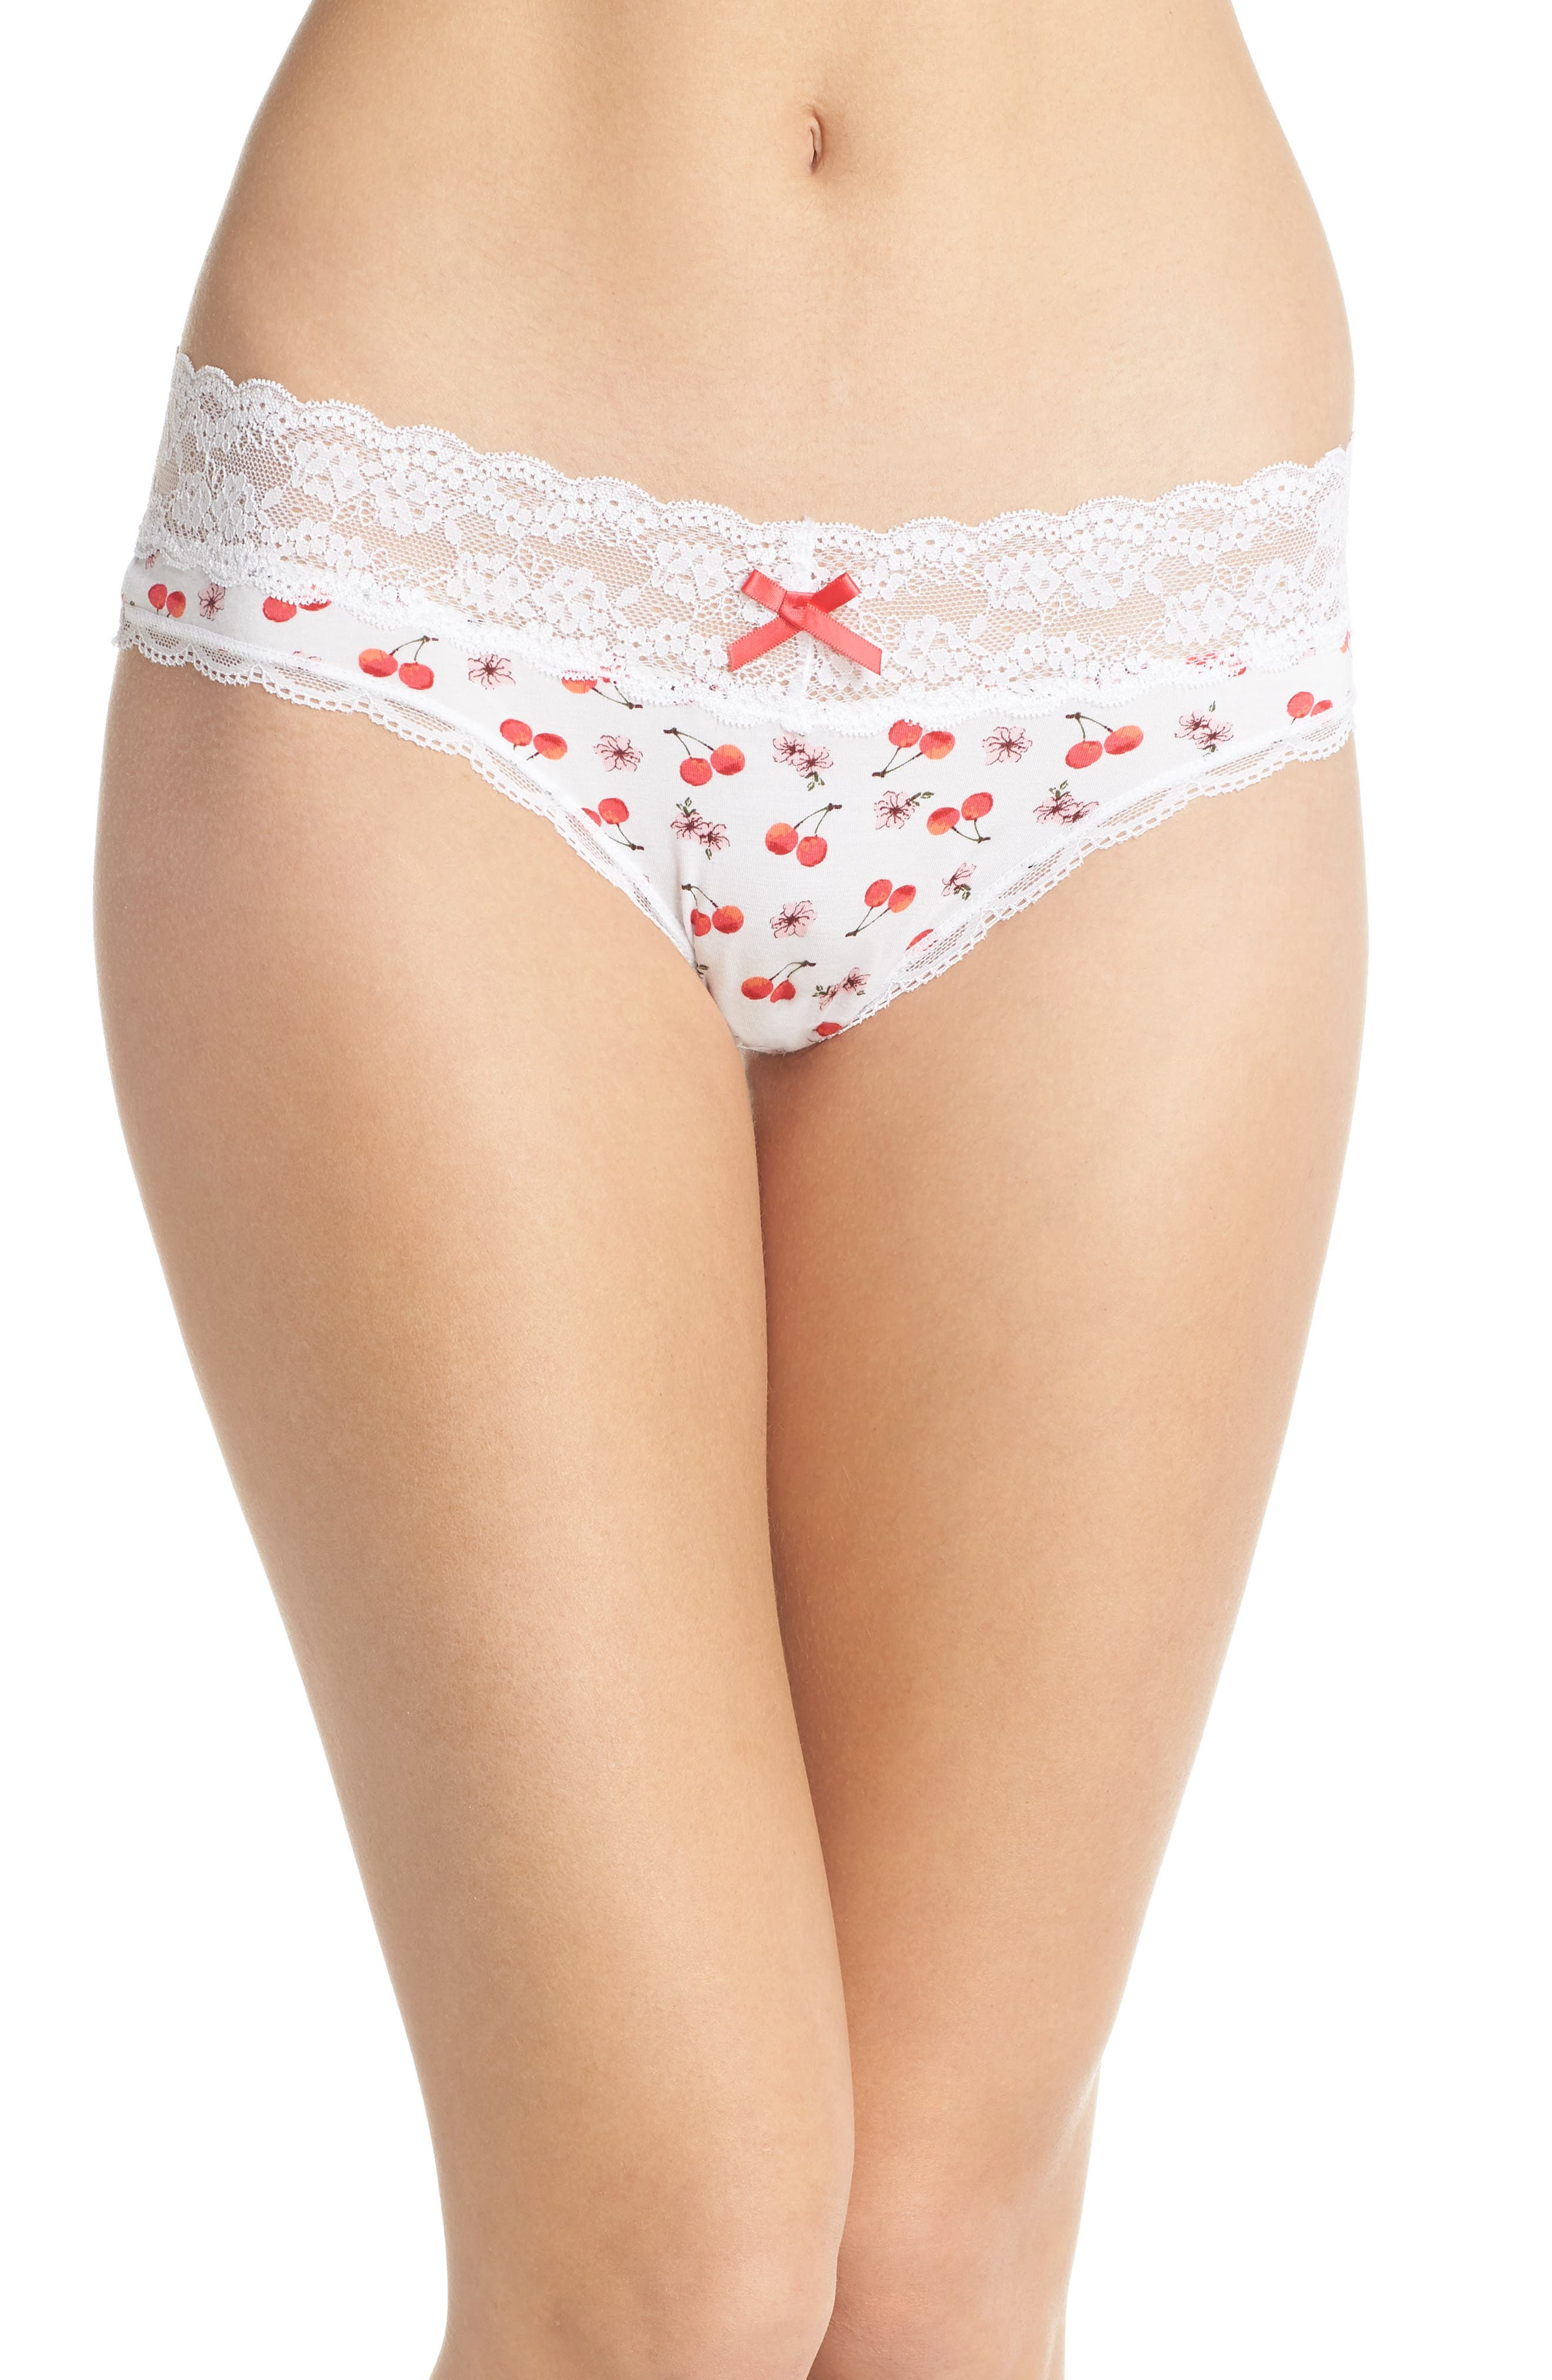 Lace Trim Low Rise Thong,                         Main,                         color, White Cherry Blossom